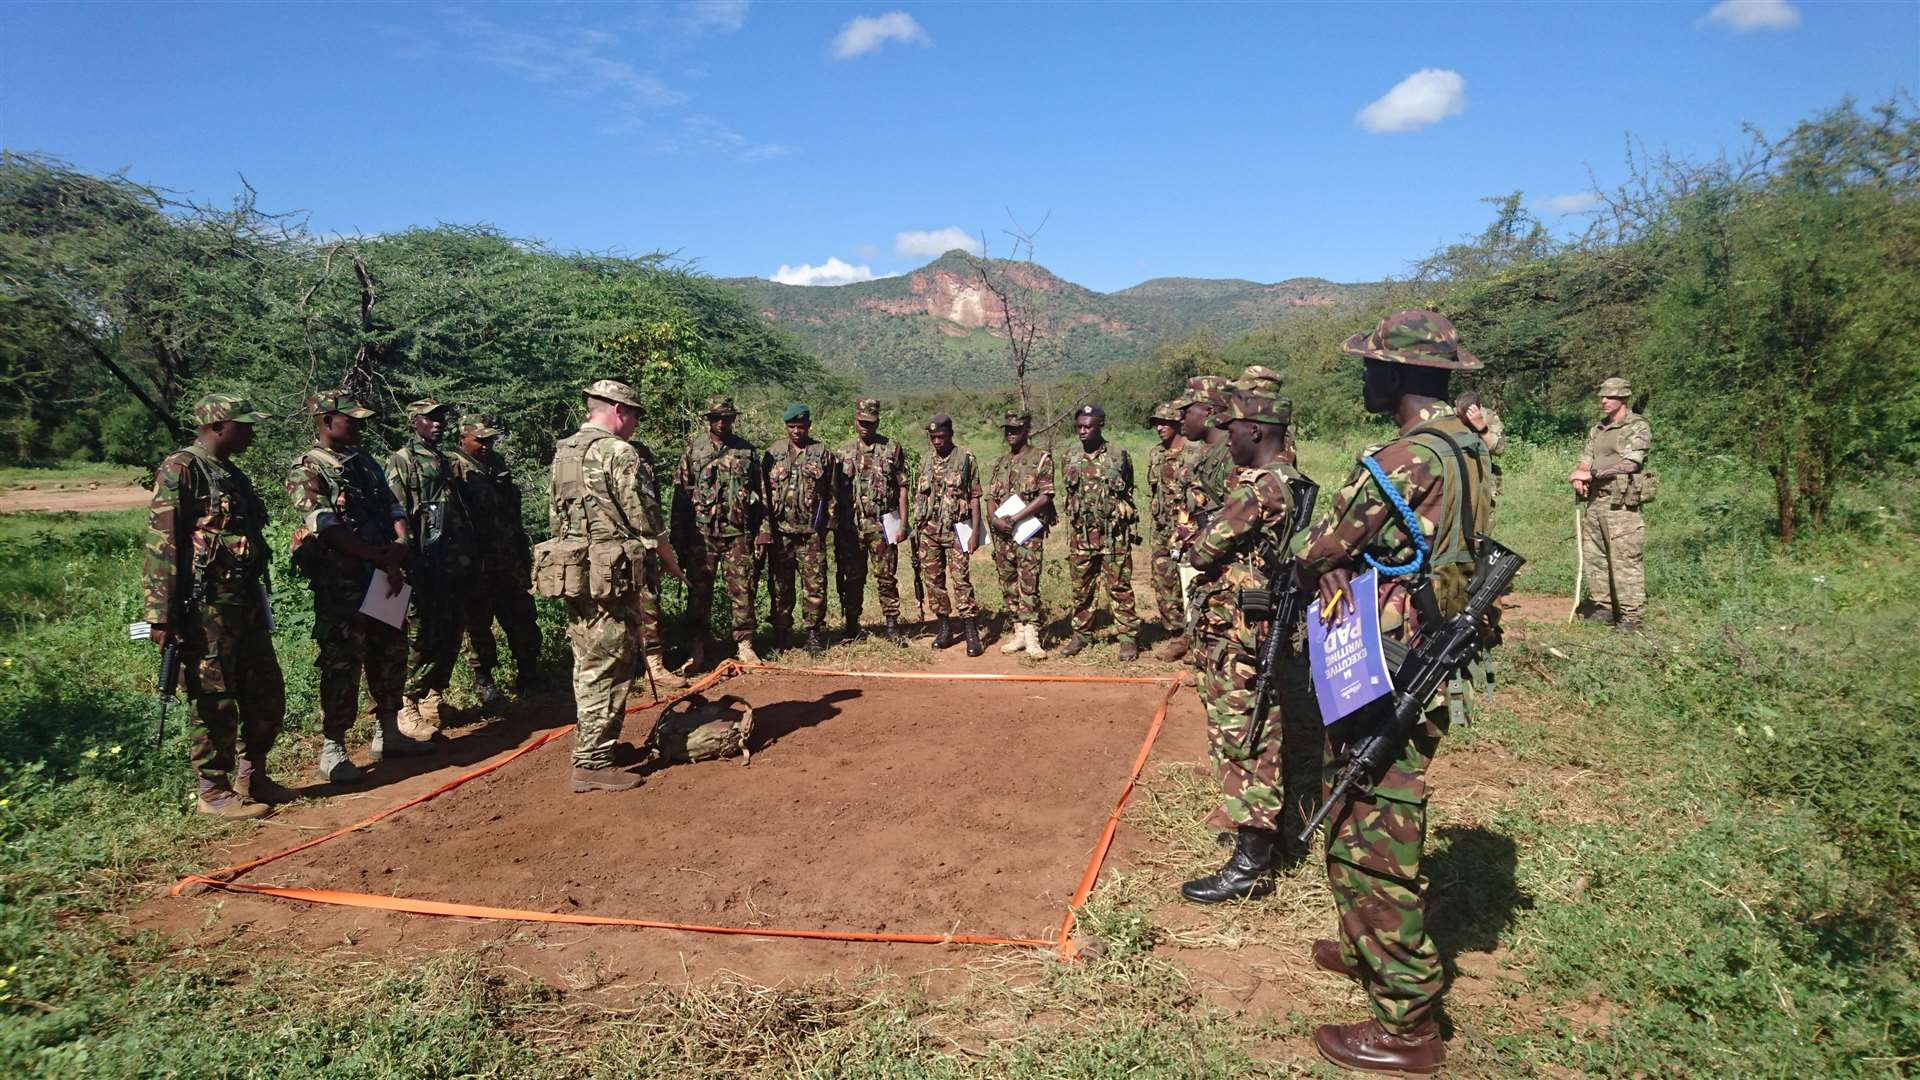 A team from RAF Honington has been providing training to the Kenyan Army (2285791)